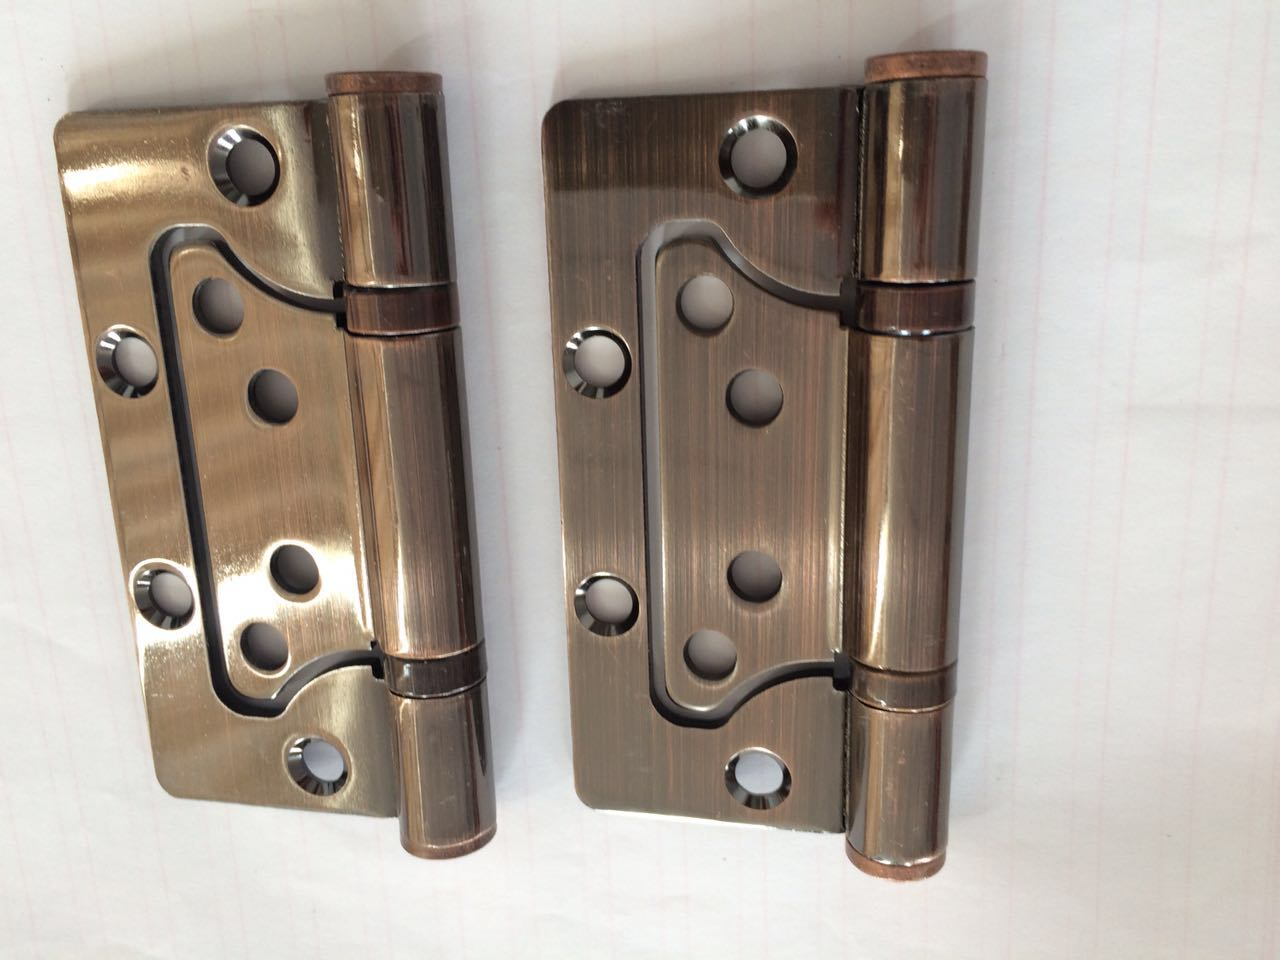 Red bronze hinges 4 inch wooden doors, interior doors bearing sheet 4*3mm butterfly hinge free slot